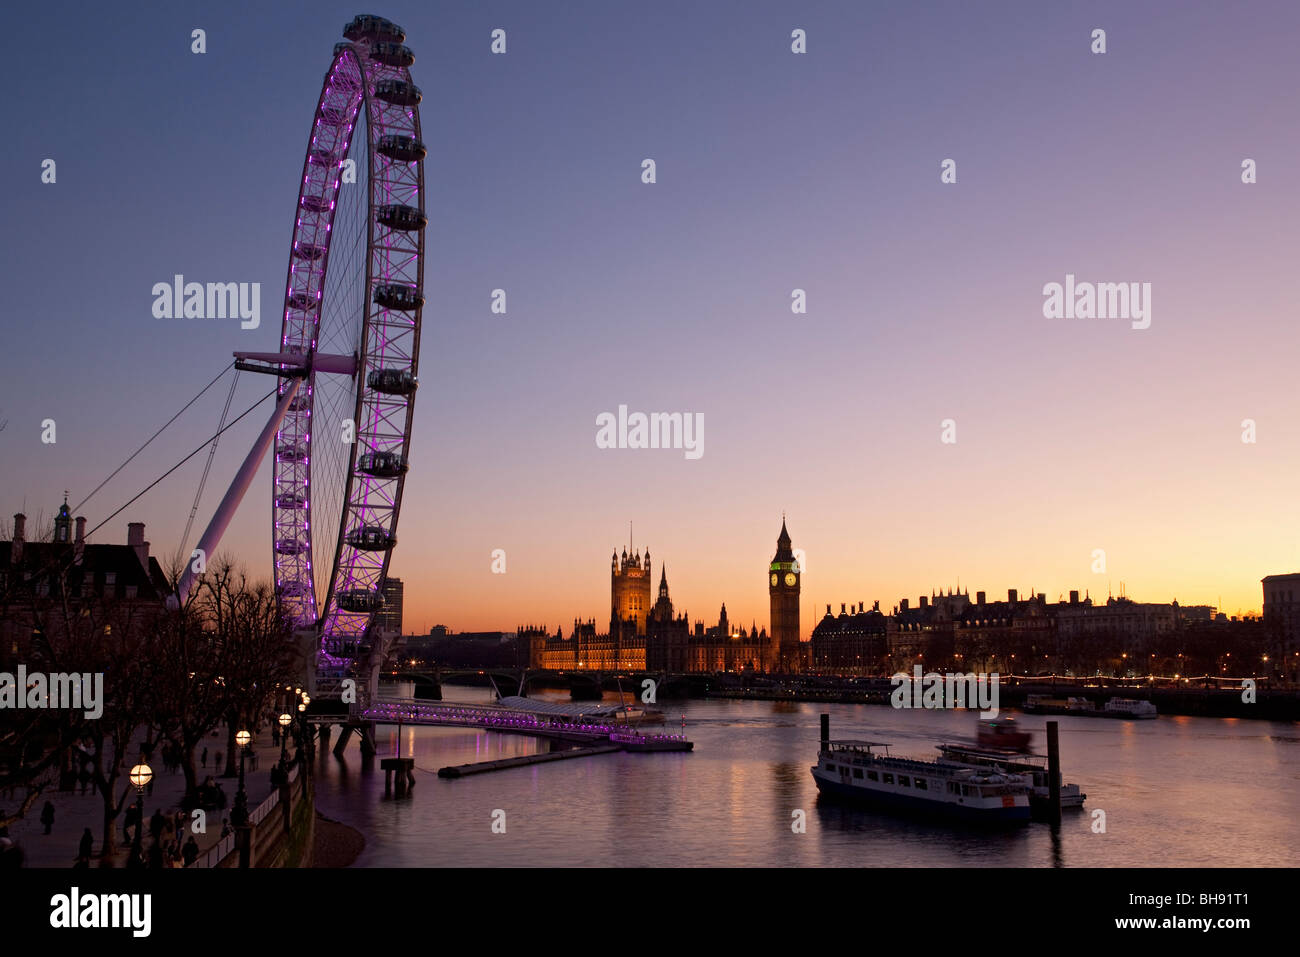 Millennium Wheel, Fluß Themse, Big Ben und den Houses of Parliament in der Nacht vom Südufer, London, Stockbild